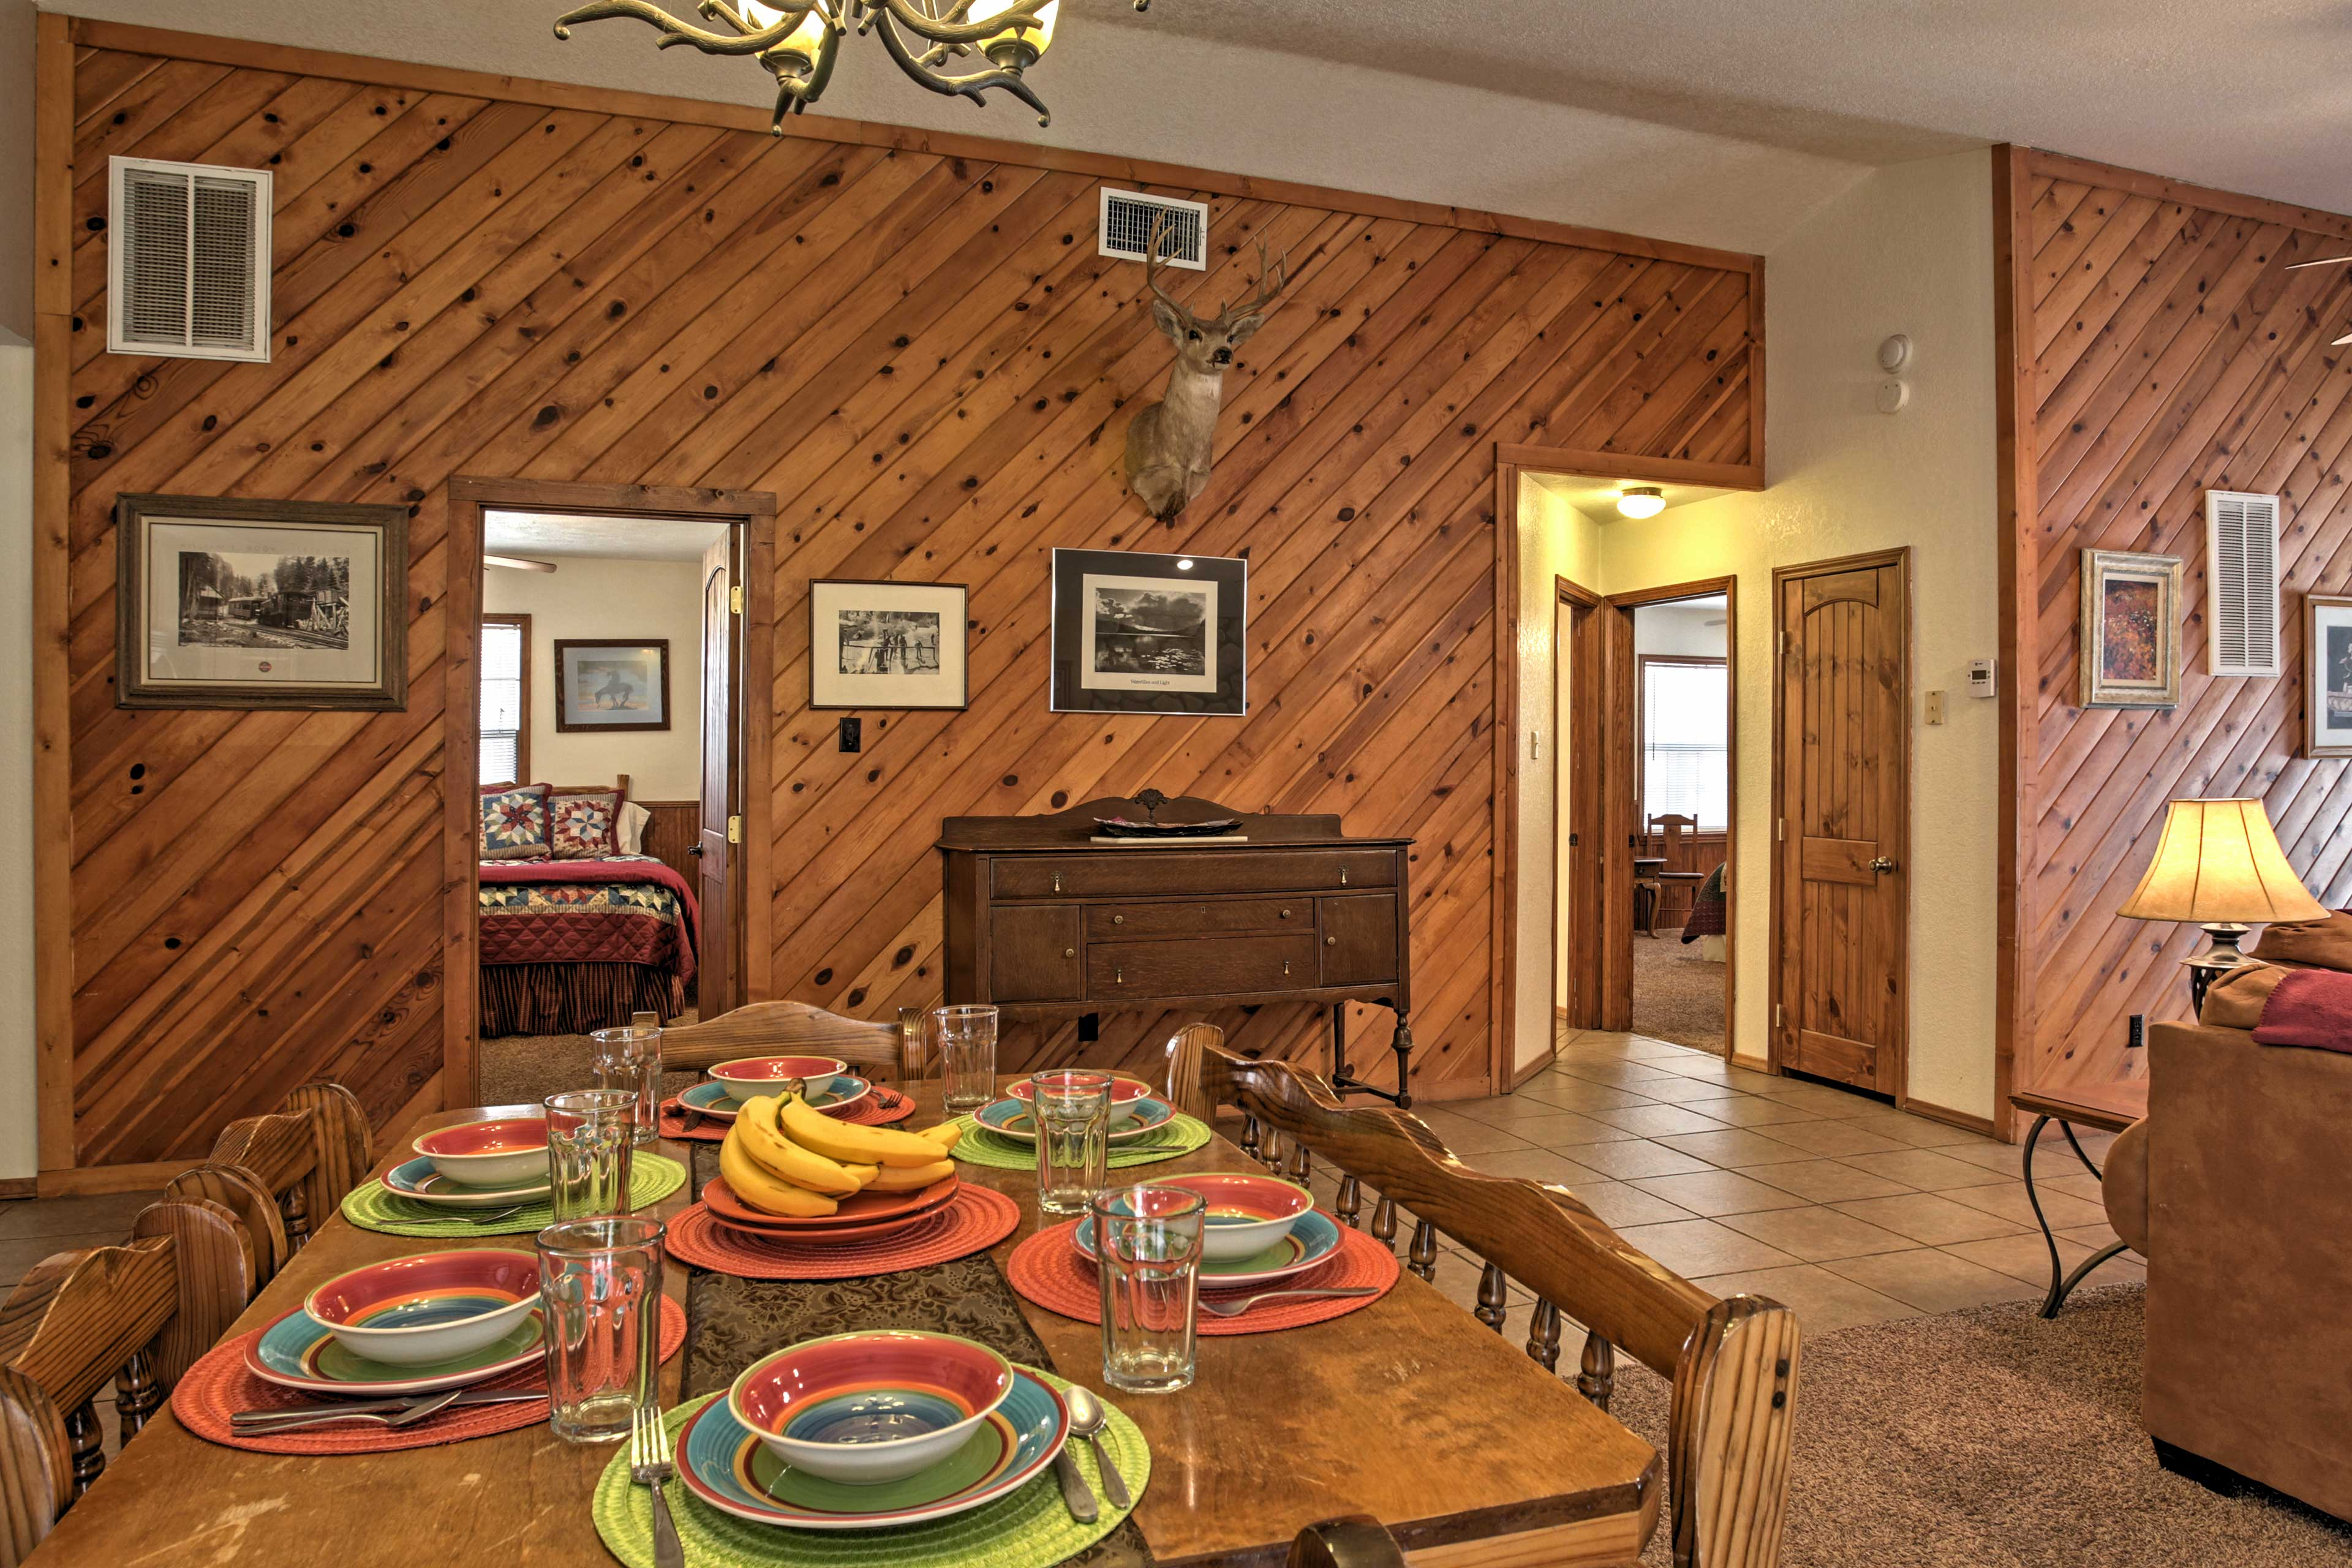 Gather around the community dining table with seating for 6-8 guests.